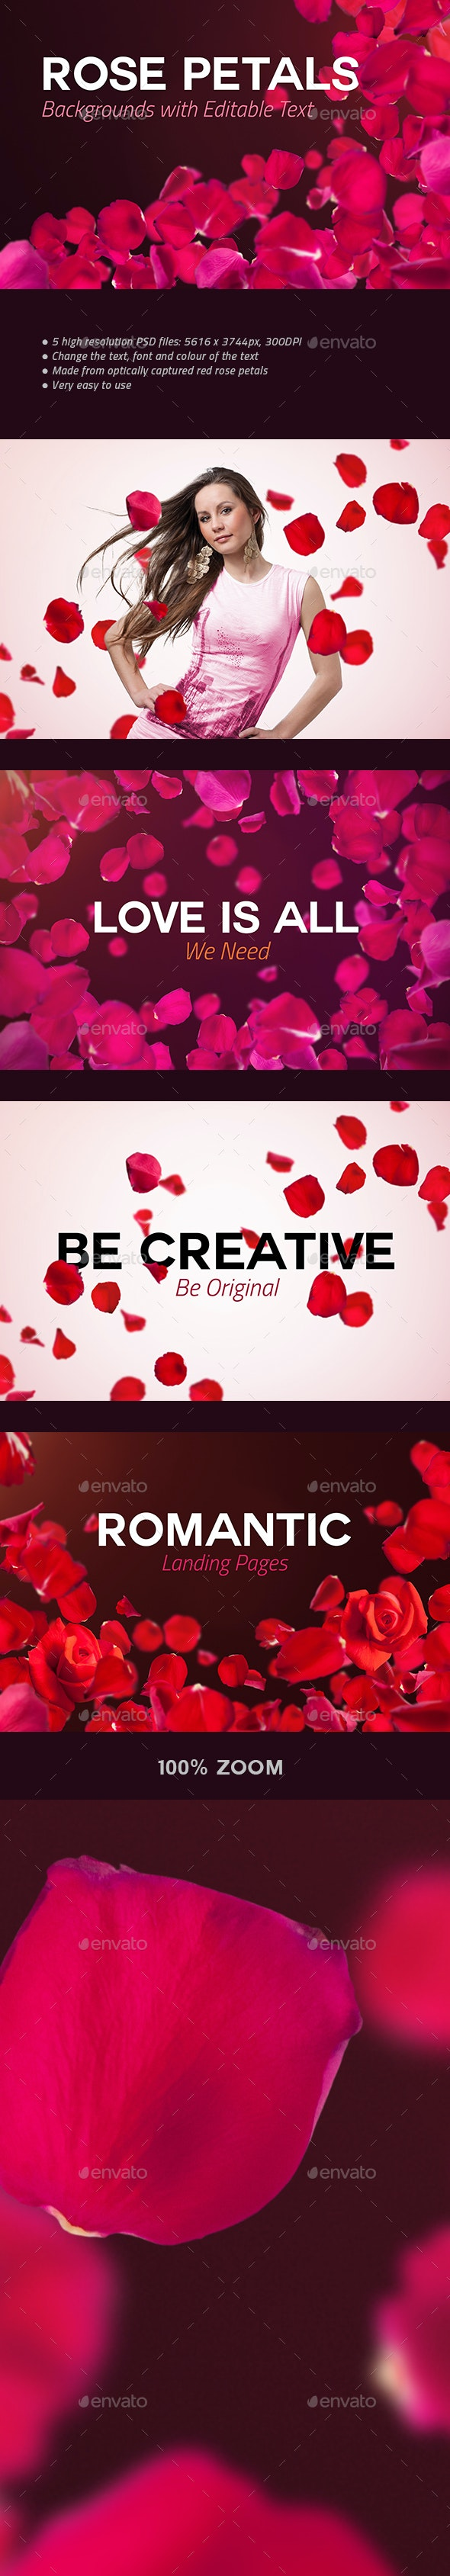 4 Rose Petals Backgrounds with Editable Text - Abstract Backgrounds